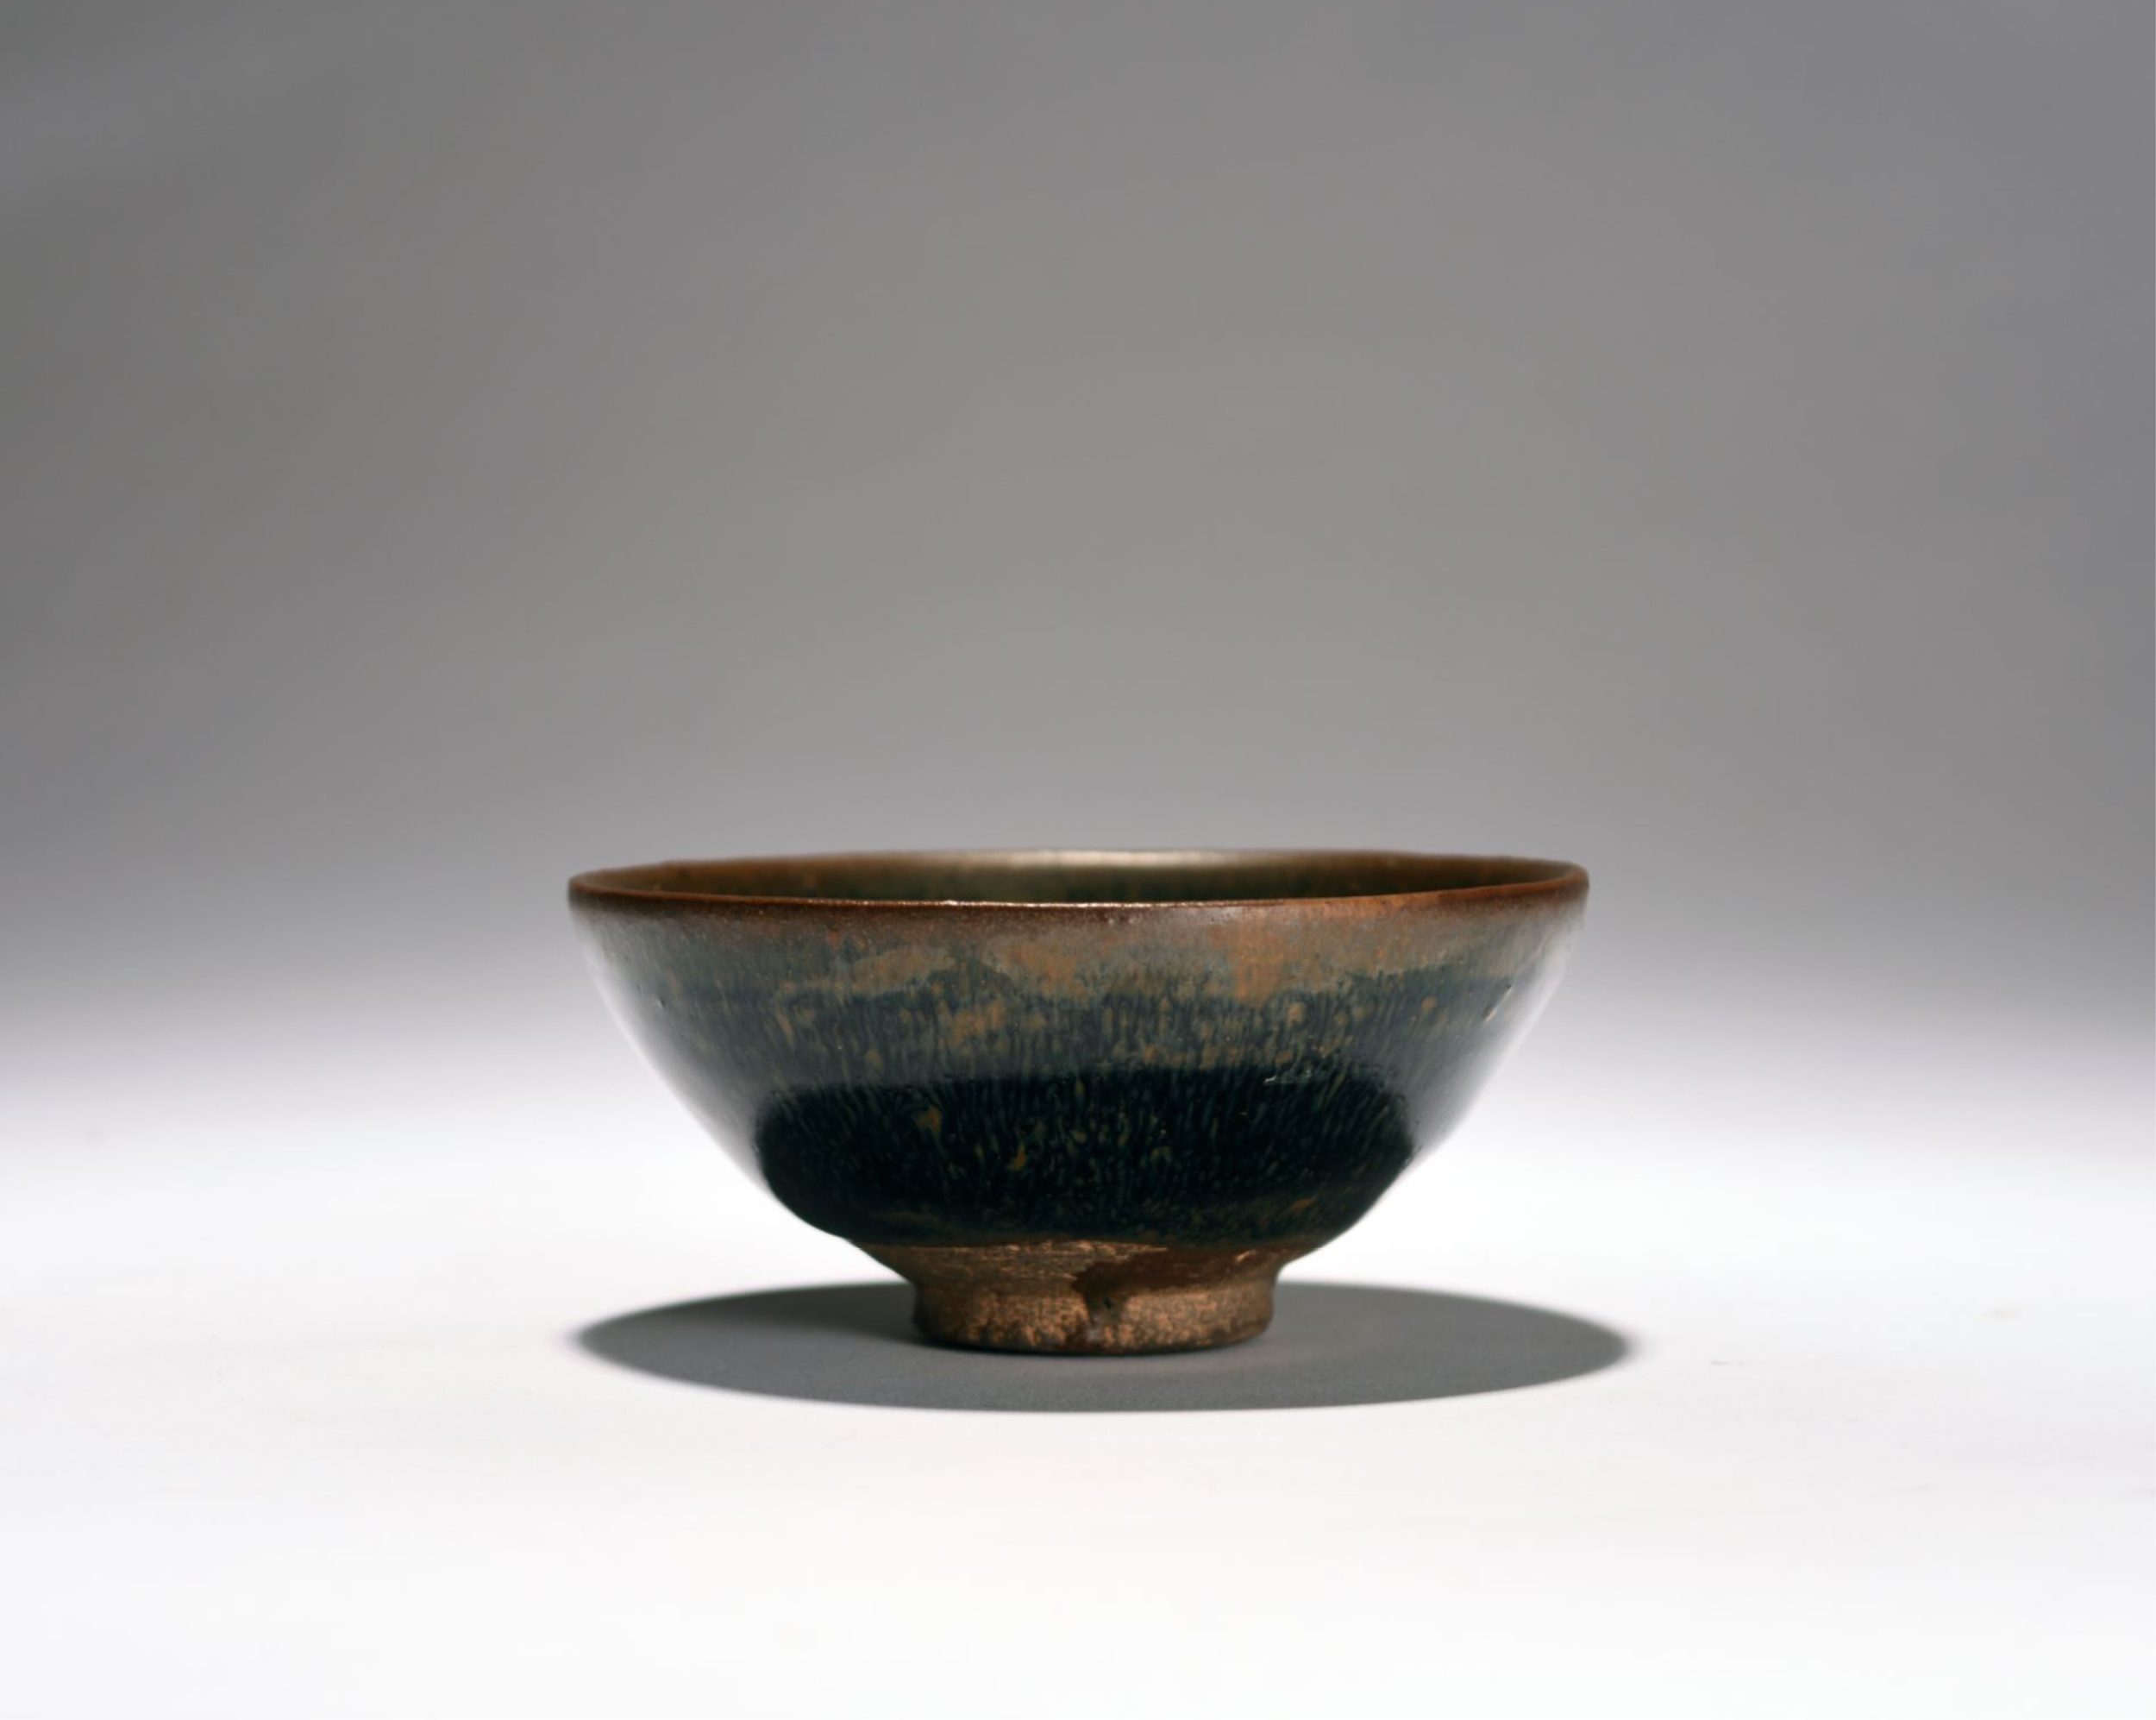 Chinese bowl sells for astonishing £16,900